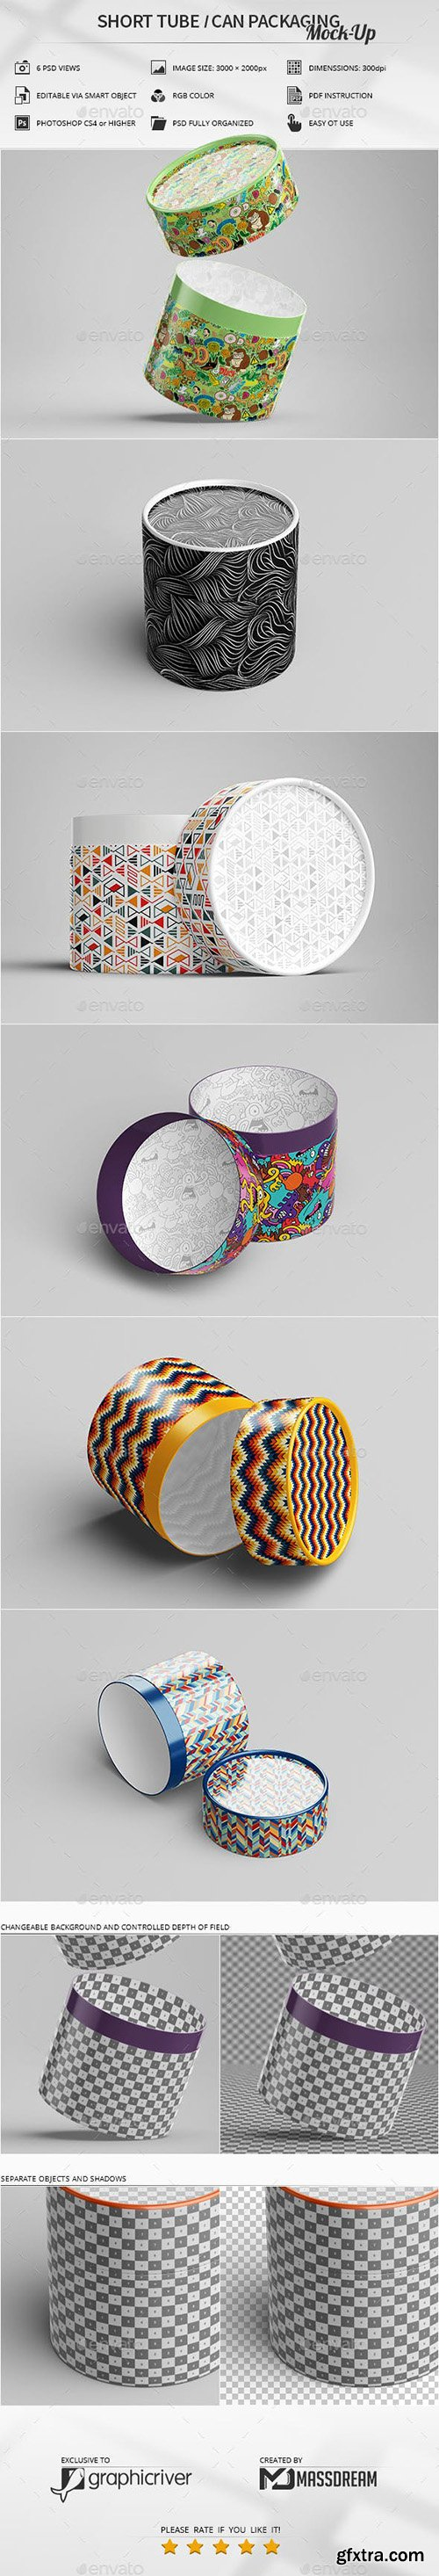 Short Tube / Can Packaging Mock-Up 23079644